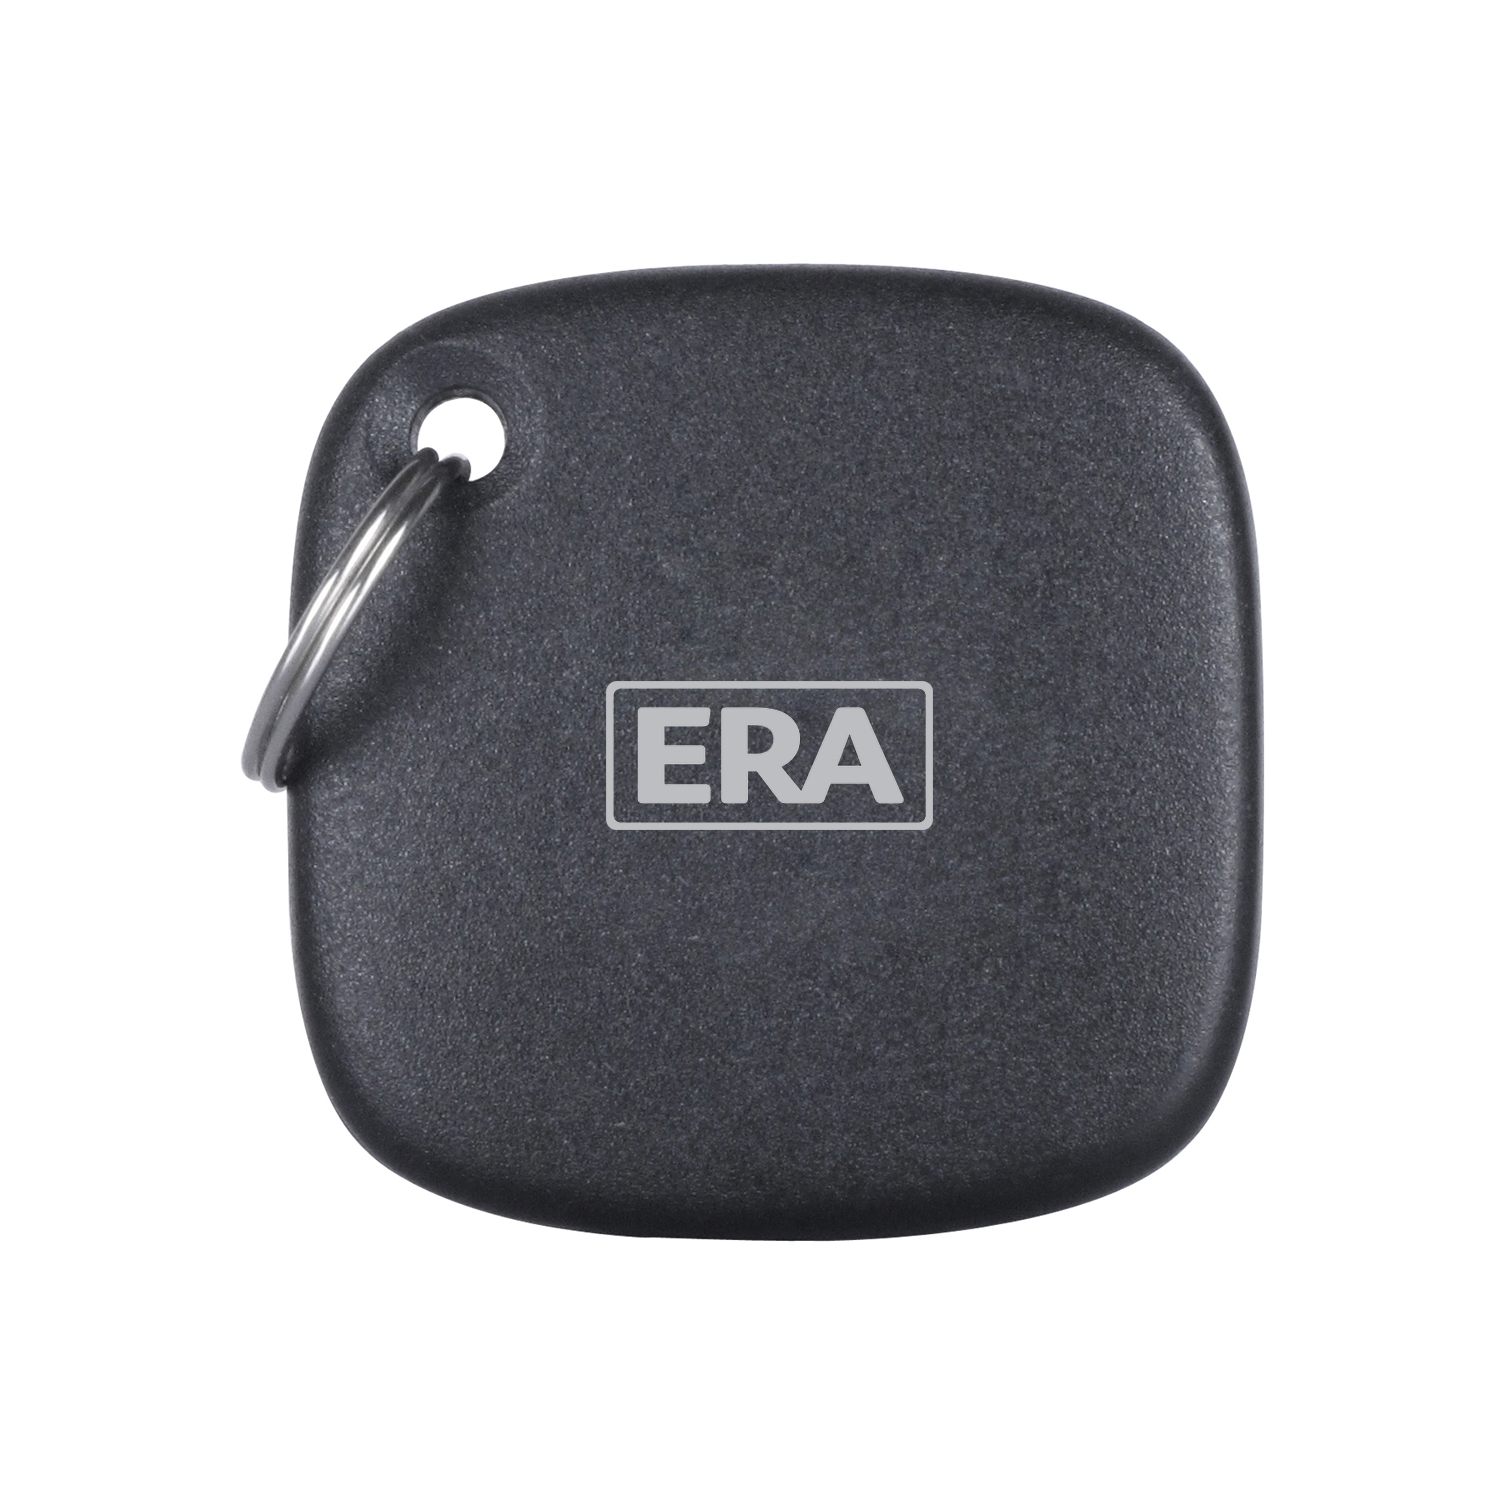 RFID Tag for ERA Alarm Systems